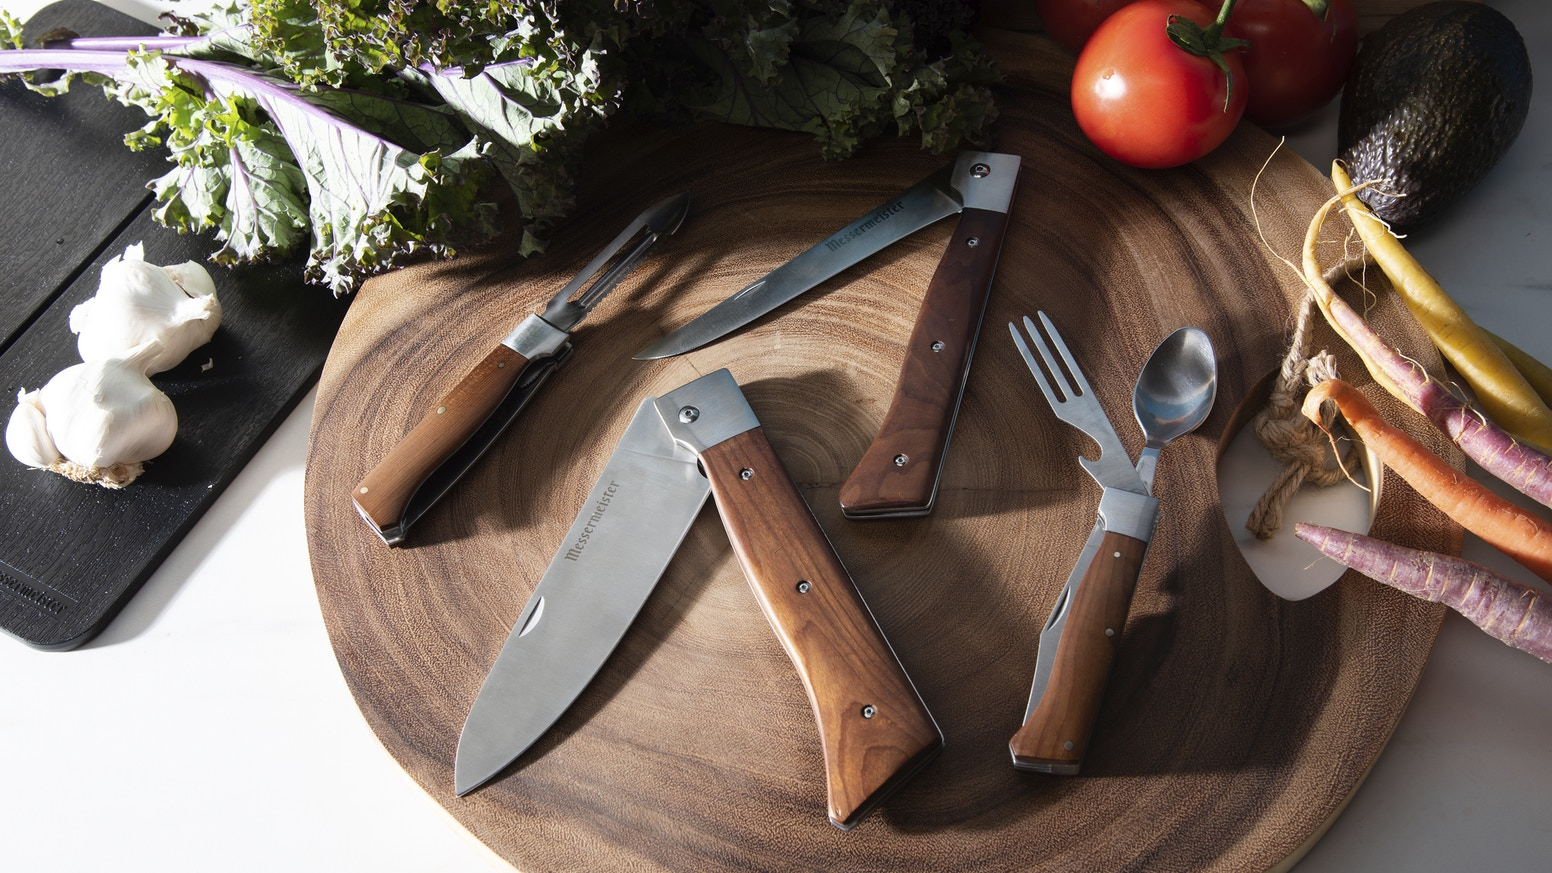 Outdoor cooking gear featuring full-sized, professional grade folding cooking knives. Chef's knife, fillet knife, peeler & camp utensil.